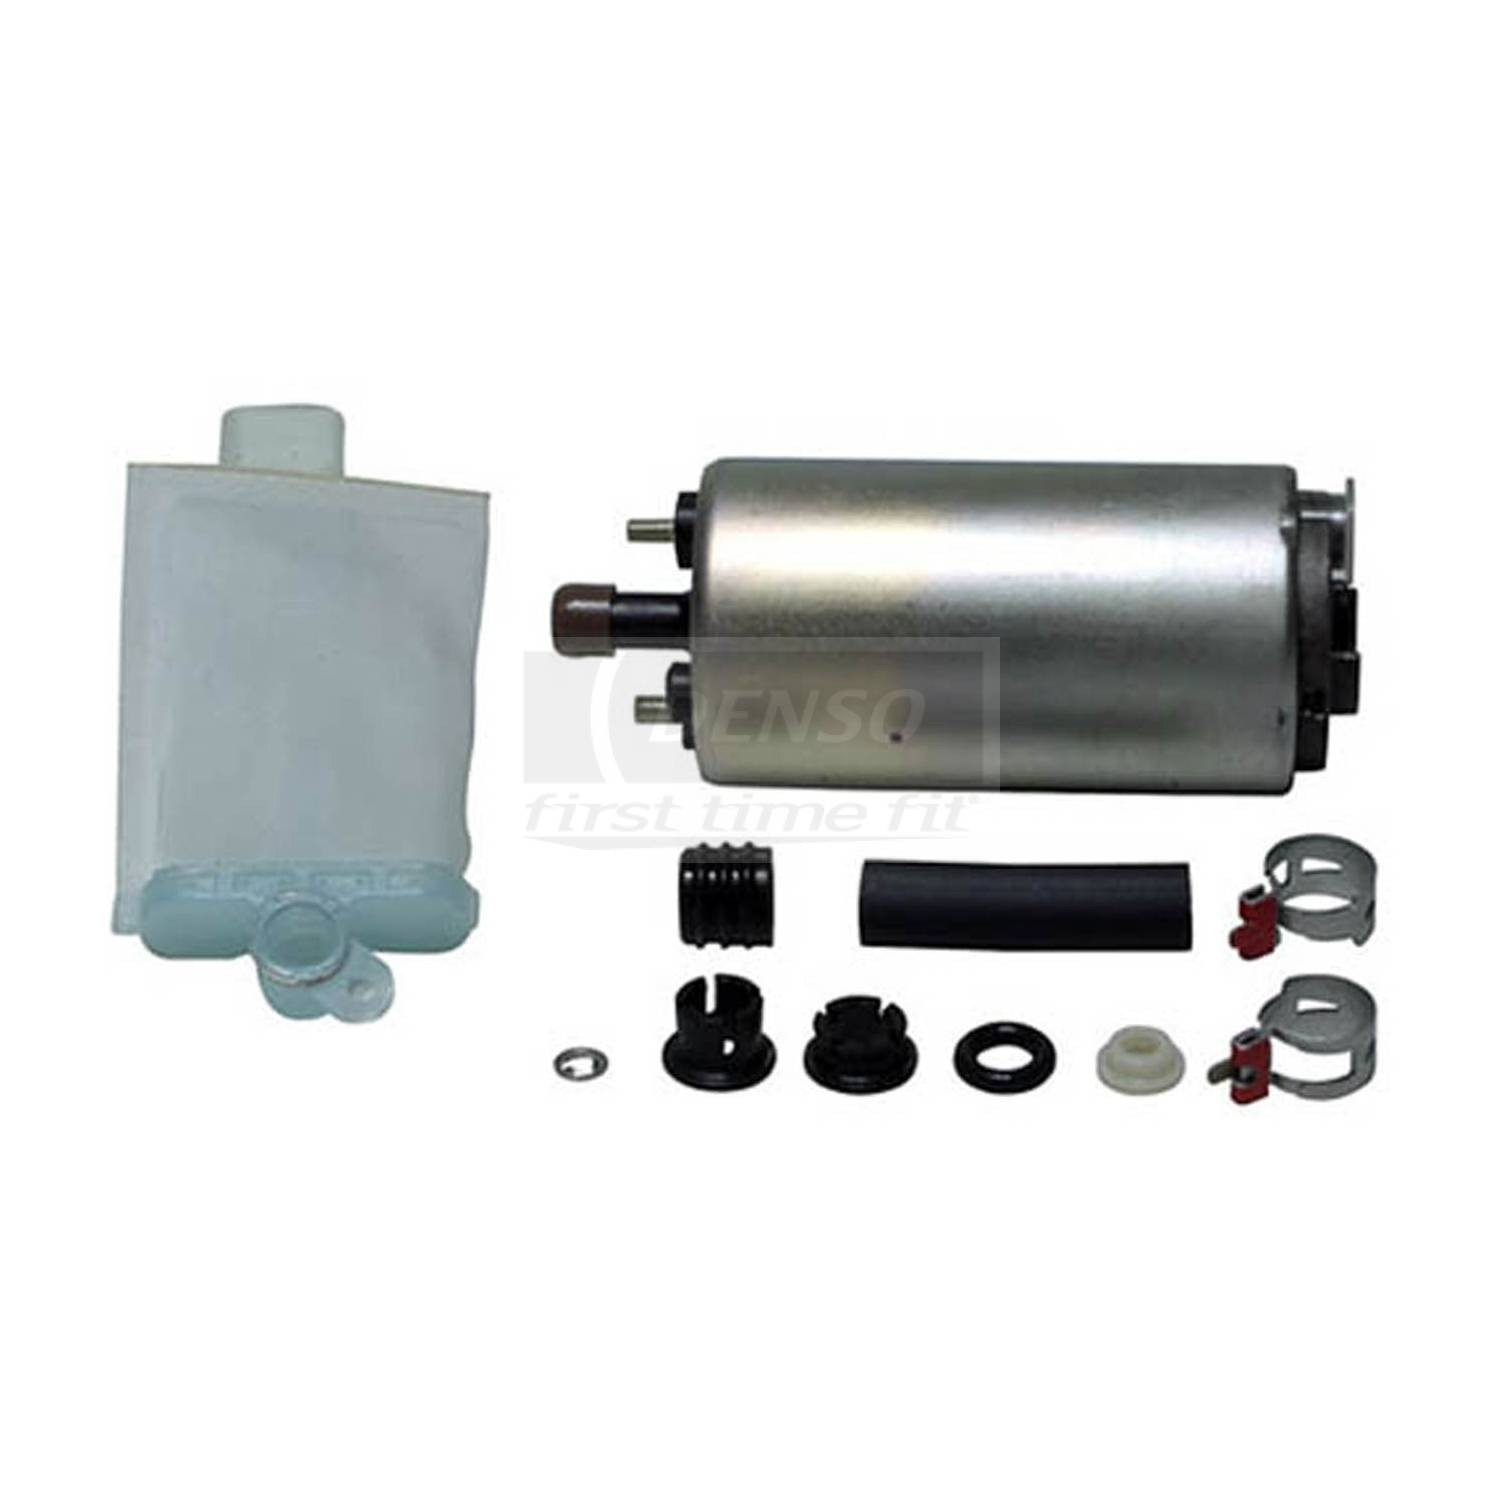 Beck Arnley Fuel Filter Part Number 043 0812 1989 Subaru Gl Location Denso Pump Mounting Kit